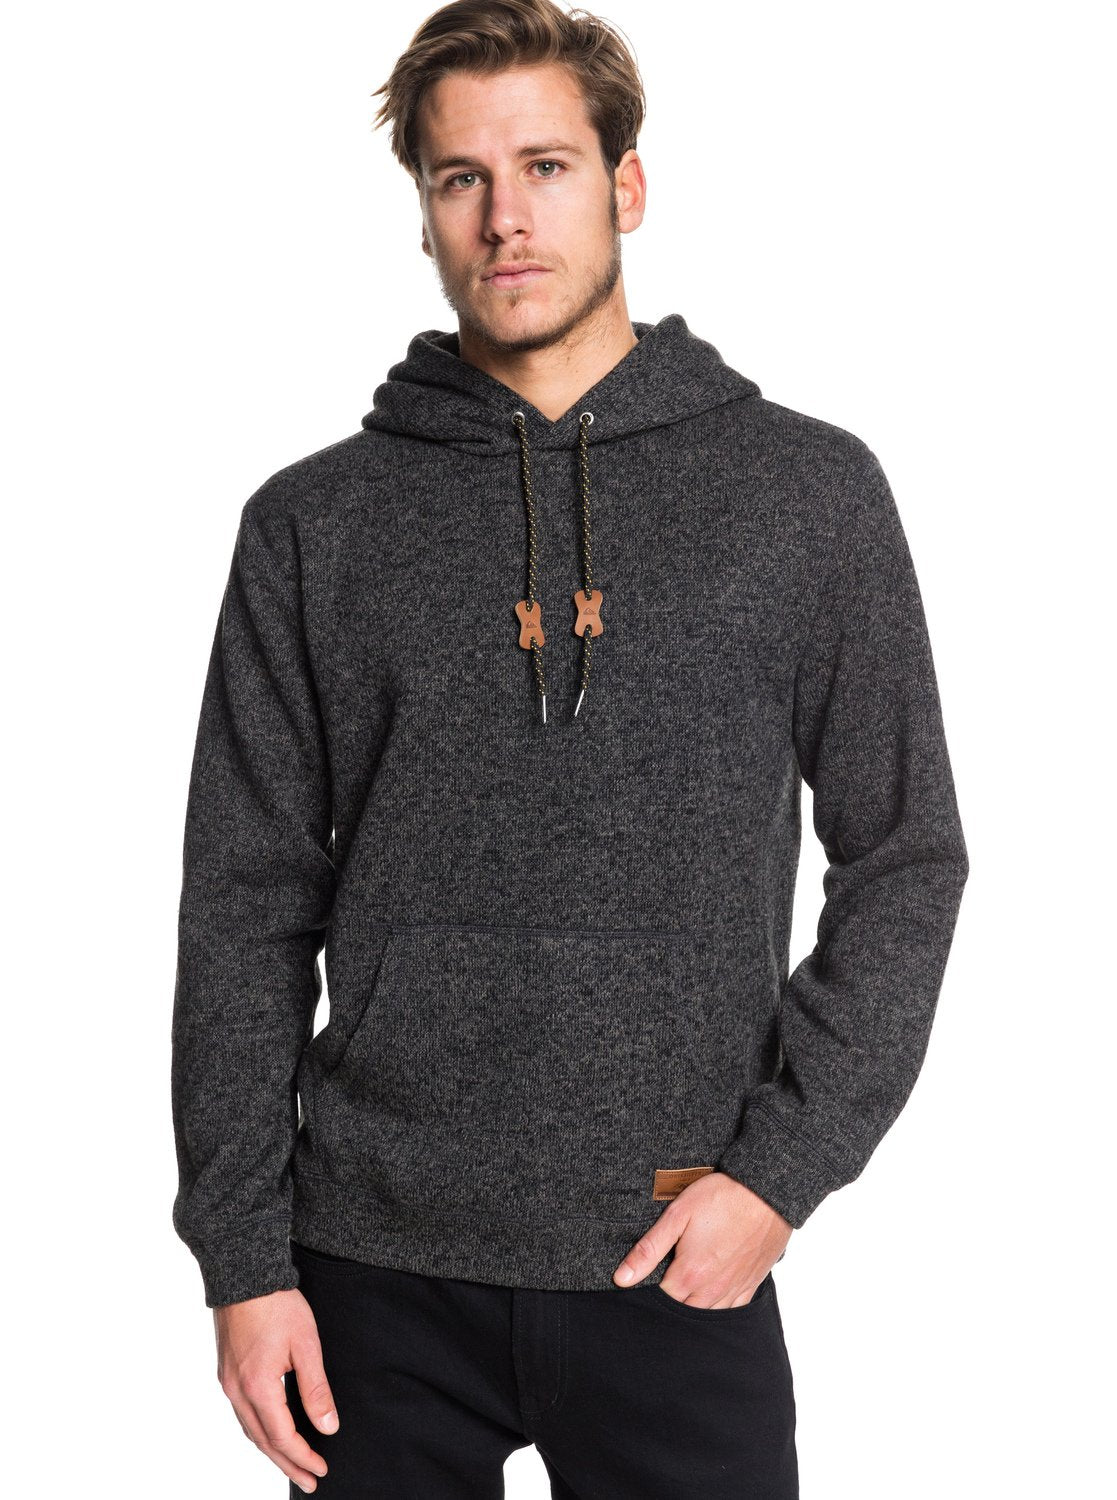 Quiksilver Discounted  Keller Pull Over Hoodie - 88 Gear